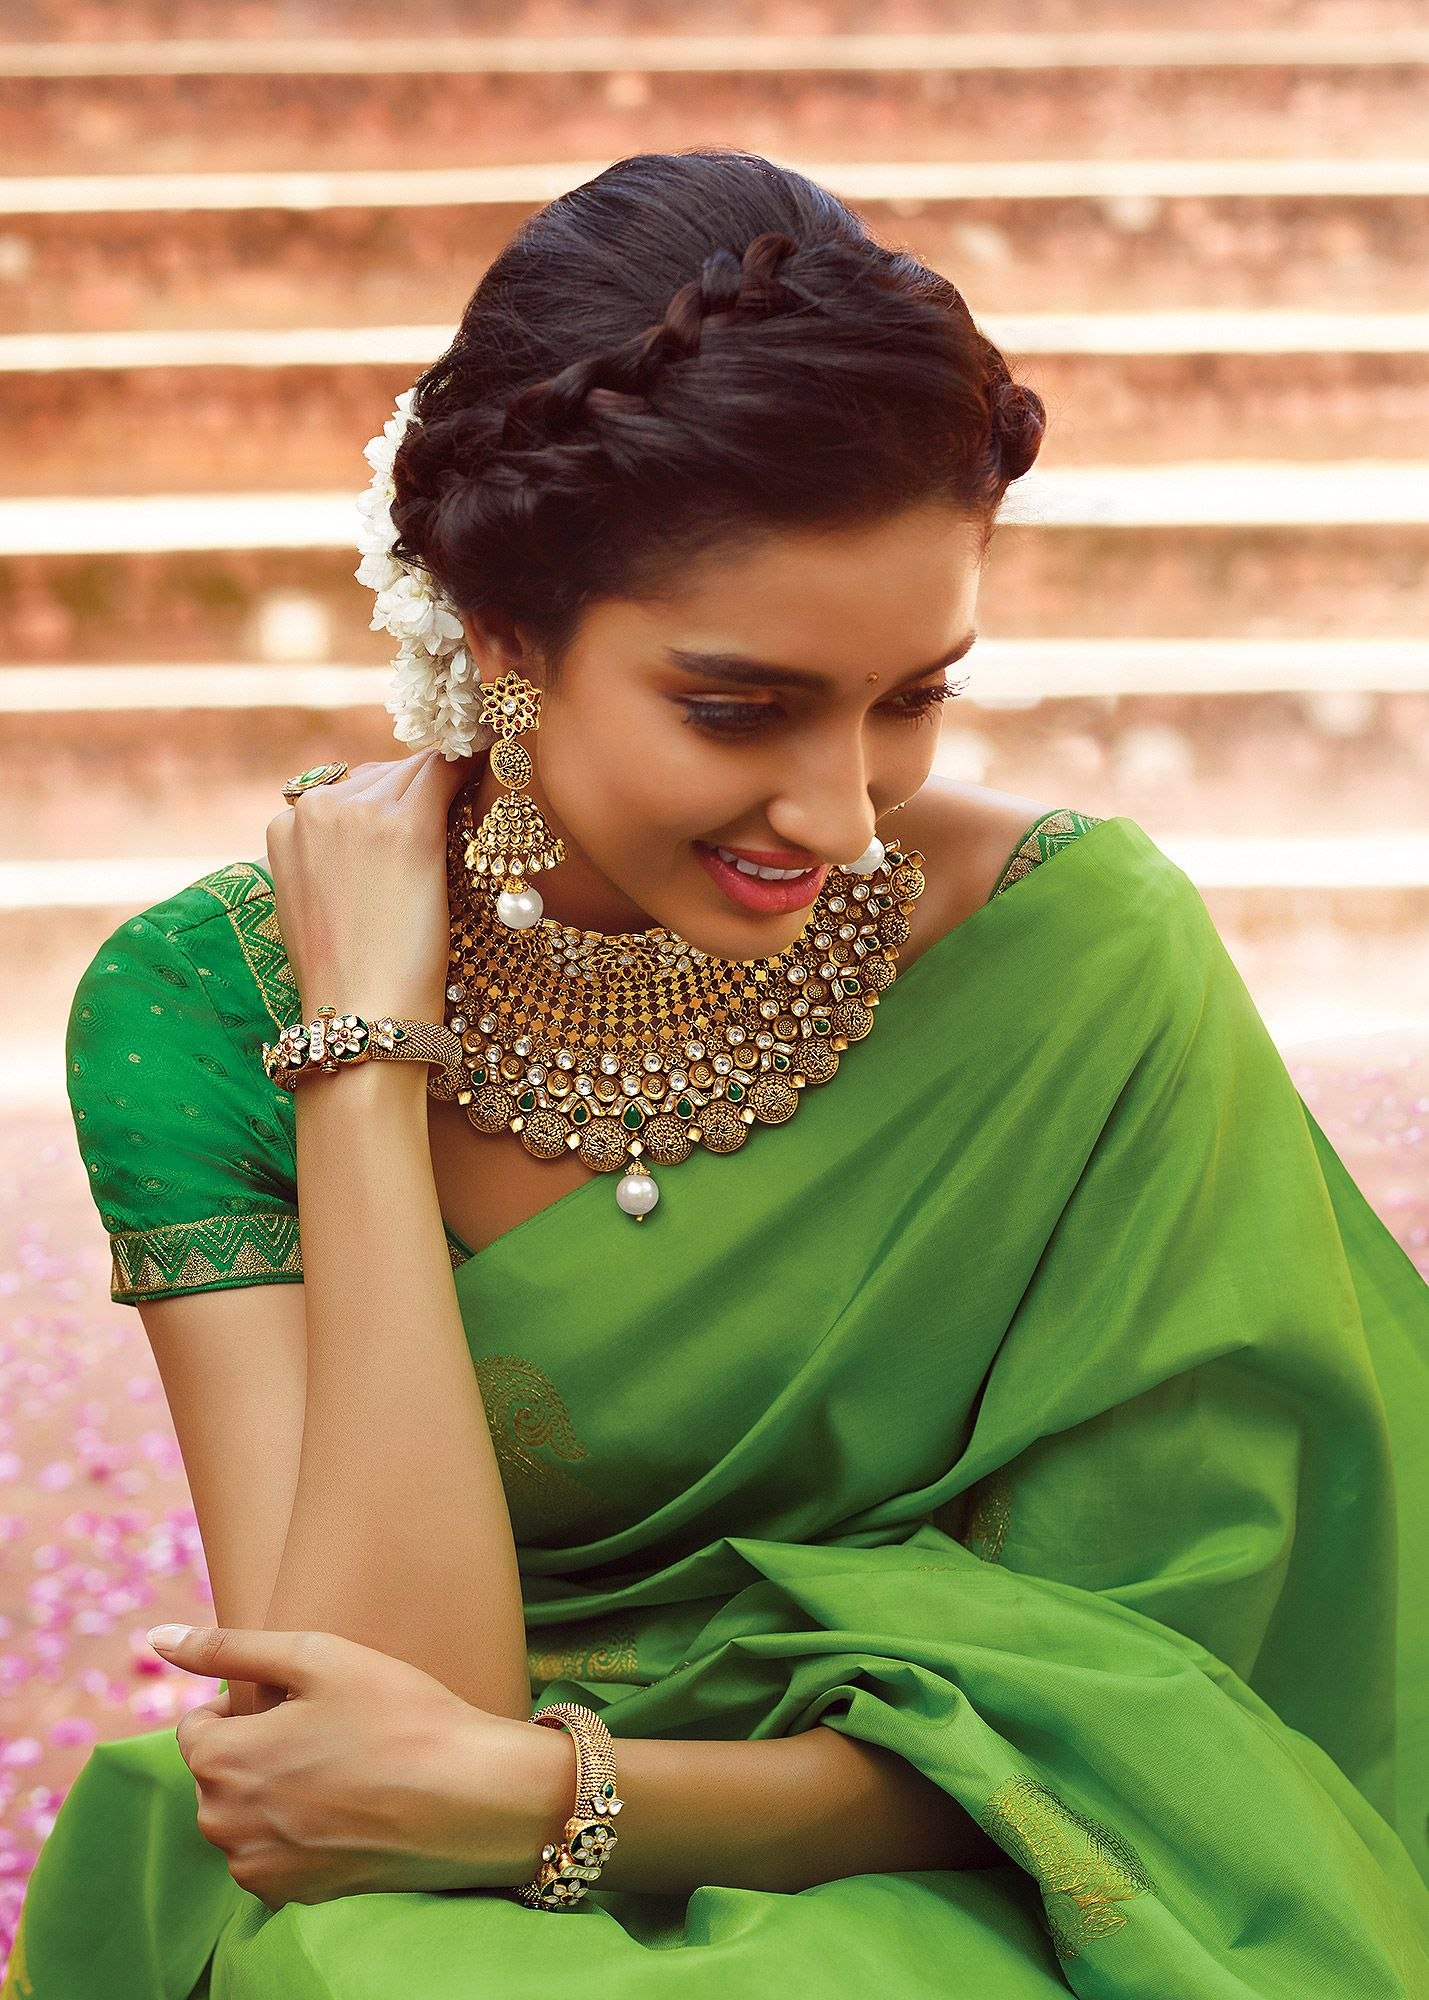 maddy_prince_7.jpg   Simple hairstyle for saree, Saree hairstyles, Indian hairstyles